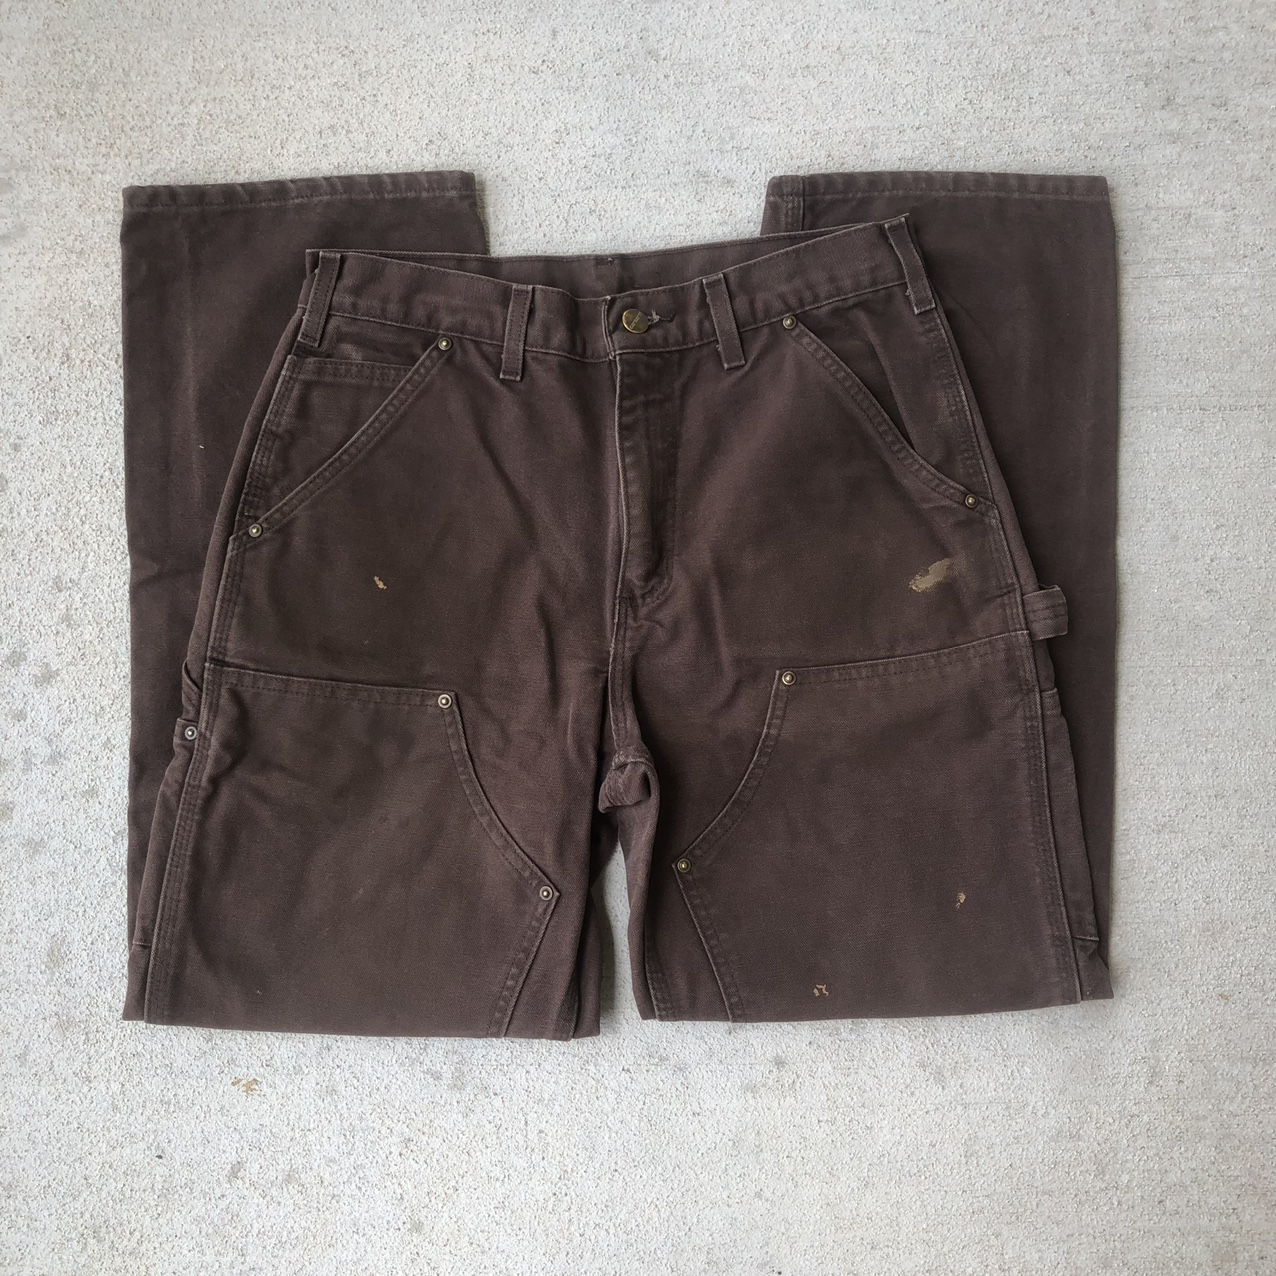 Product Image 1 - Super cute chocolate brown carhartt